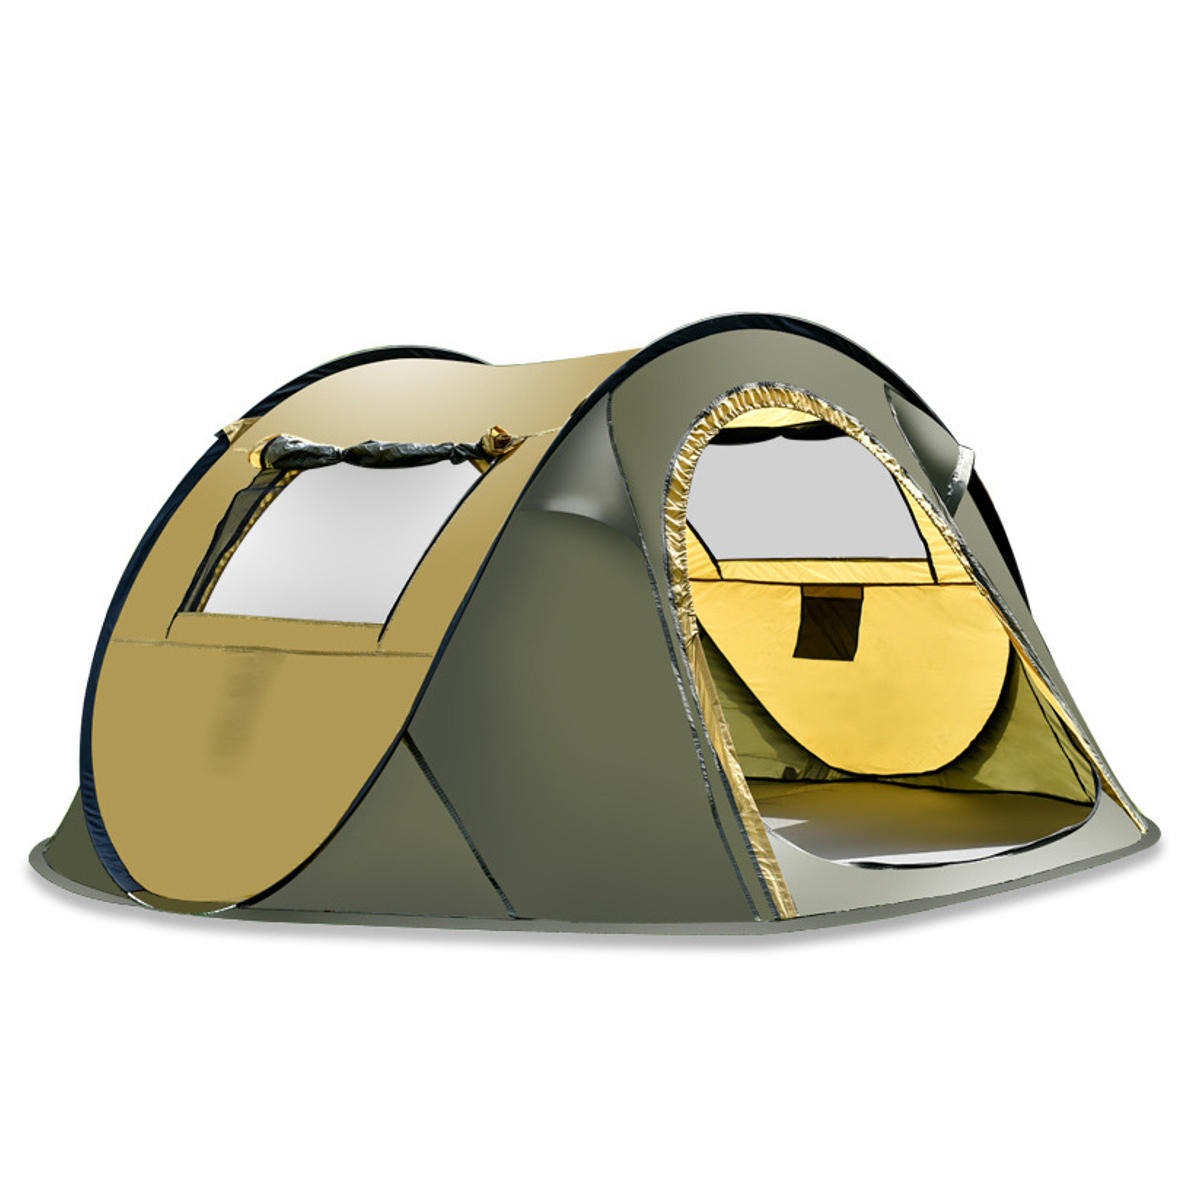 "Картинки по запросу ""5-8 person waterproof camping tent banggood"""